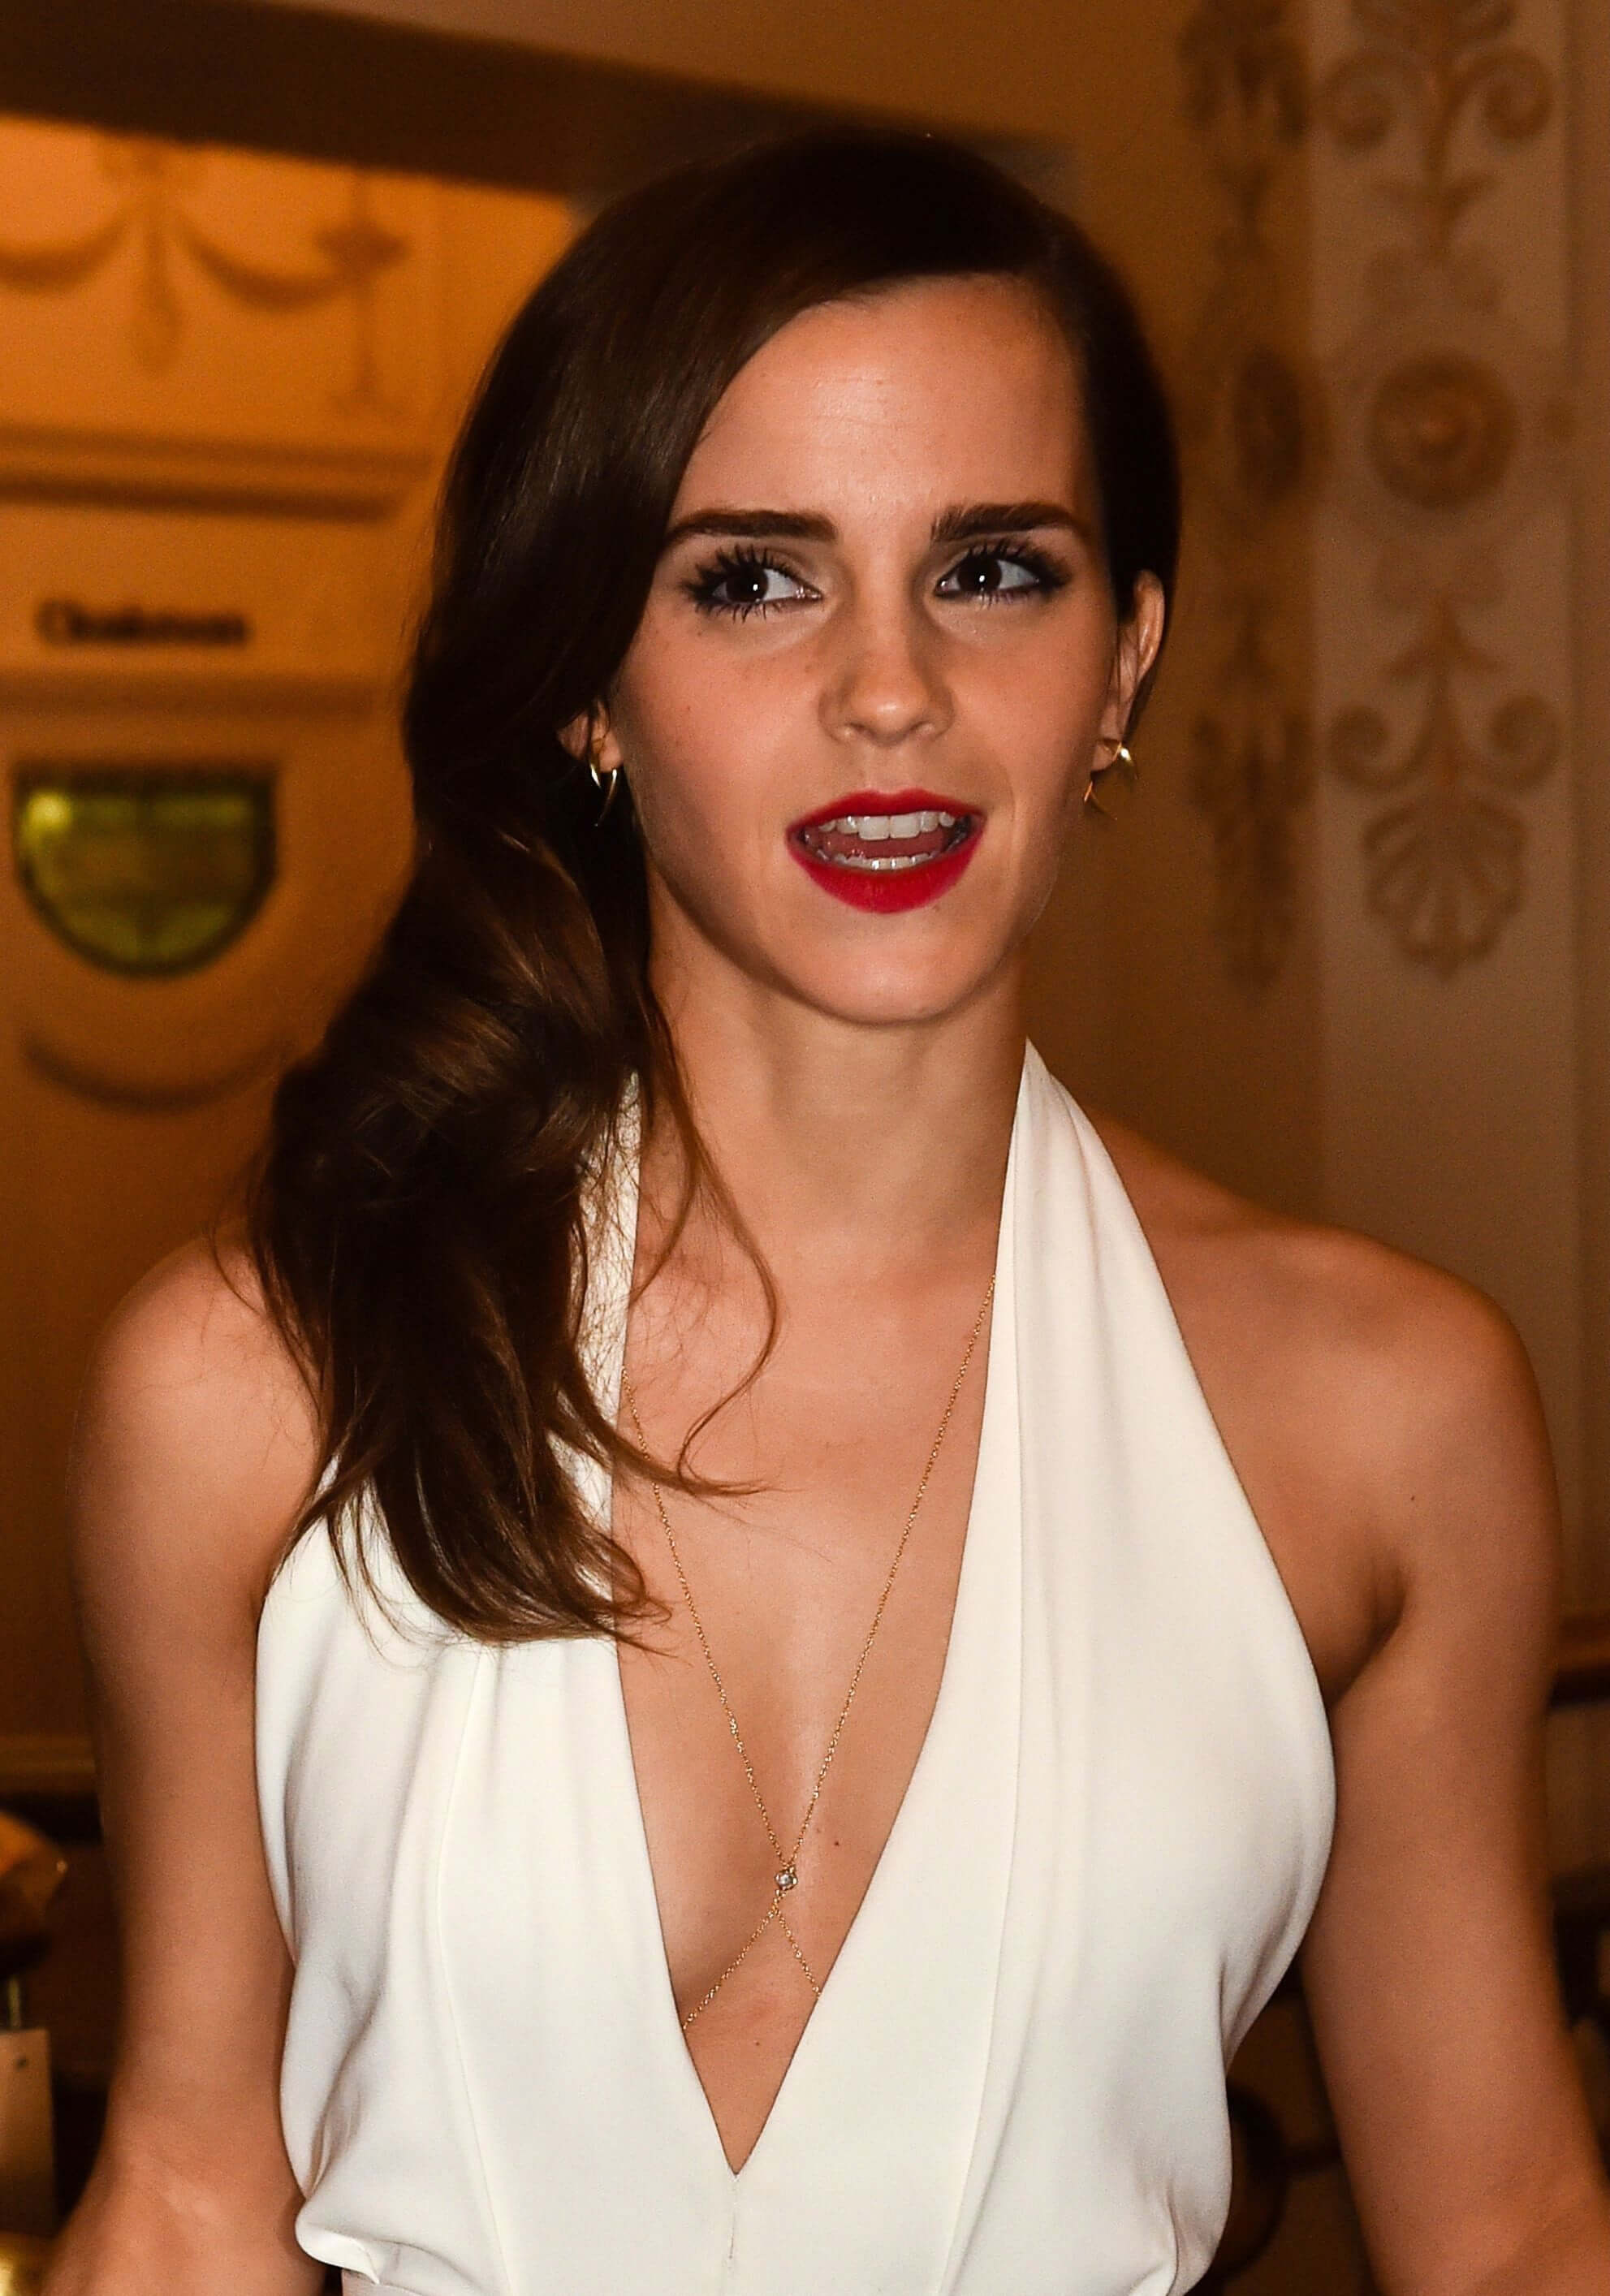 Emma Watson hot cleavage photo